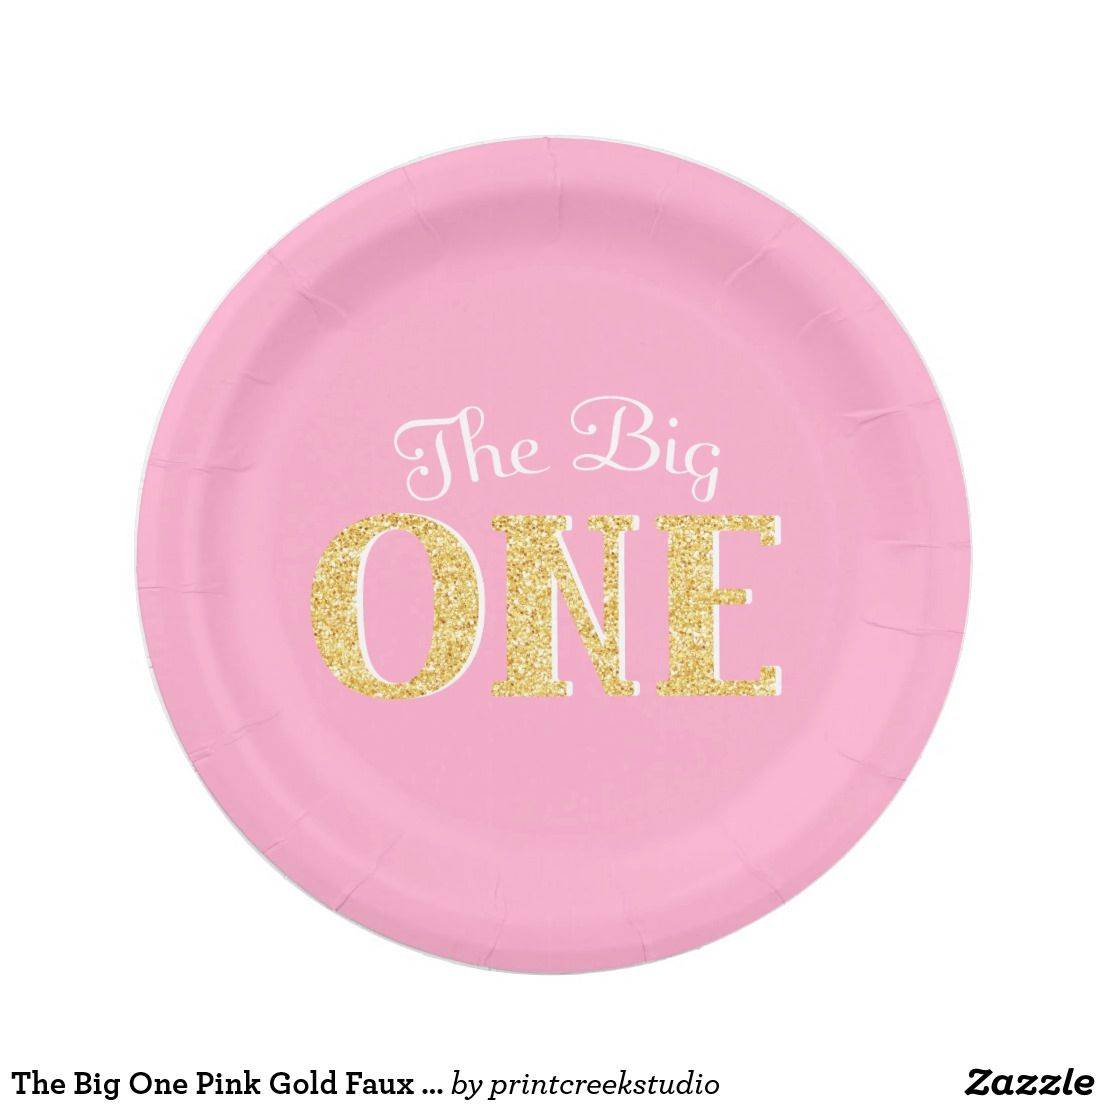 The Big One Pink Gold Faux Glitter Birthday Paper Plate Pink and gold first birthday paper plates. Designs are flat printed graphics - NOT ACTUAL GLITTER.  sc 1 st  Pinterest & The Big One Pink Gold Faux Glitter 1st Birthday Paper Plate Pink and ...